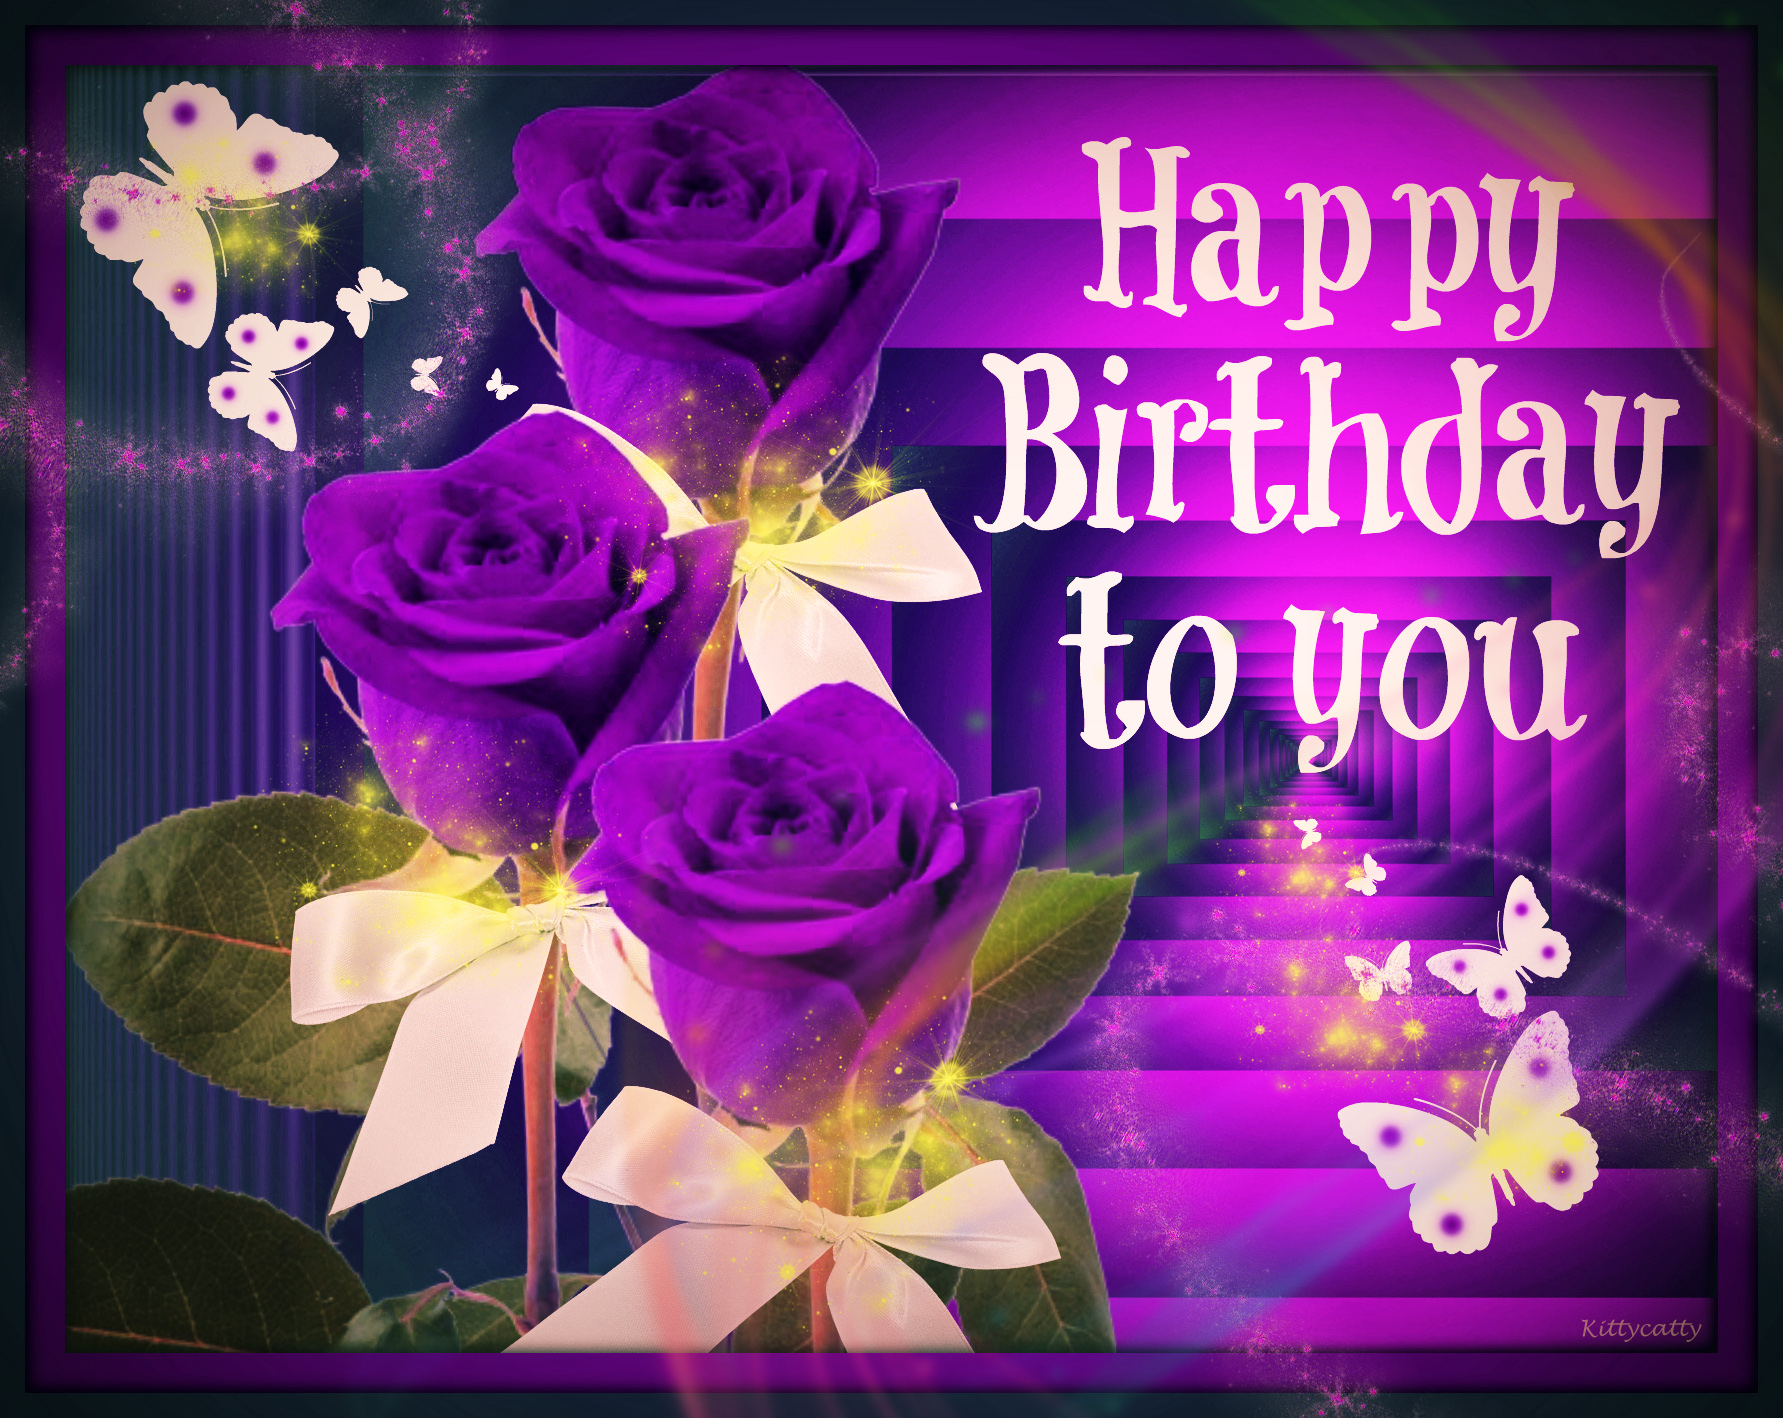 Happy birthday purple flowers comousar happy birthday purple flowers happy birthday card izmirmasajfo